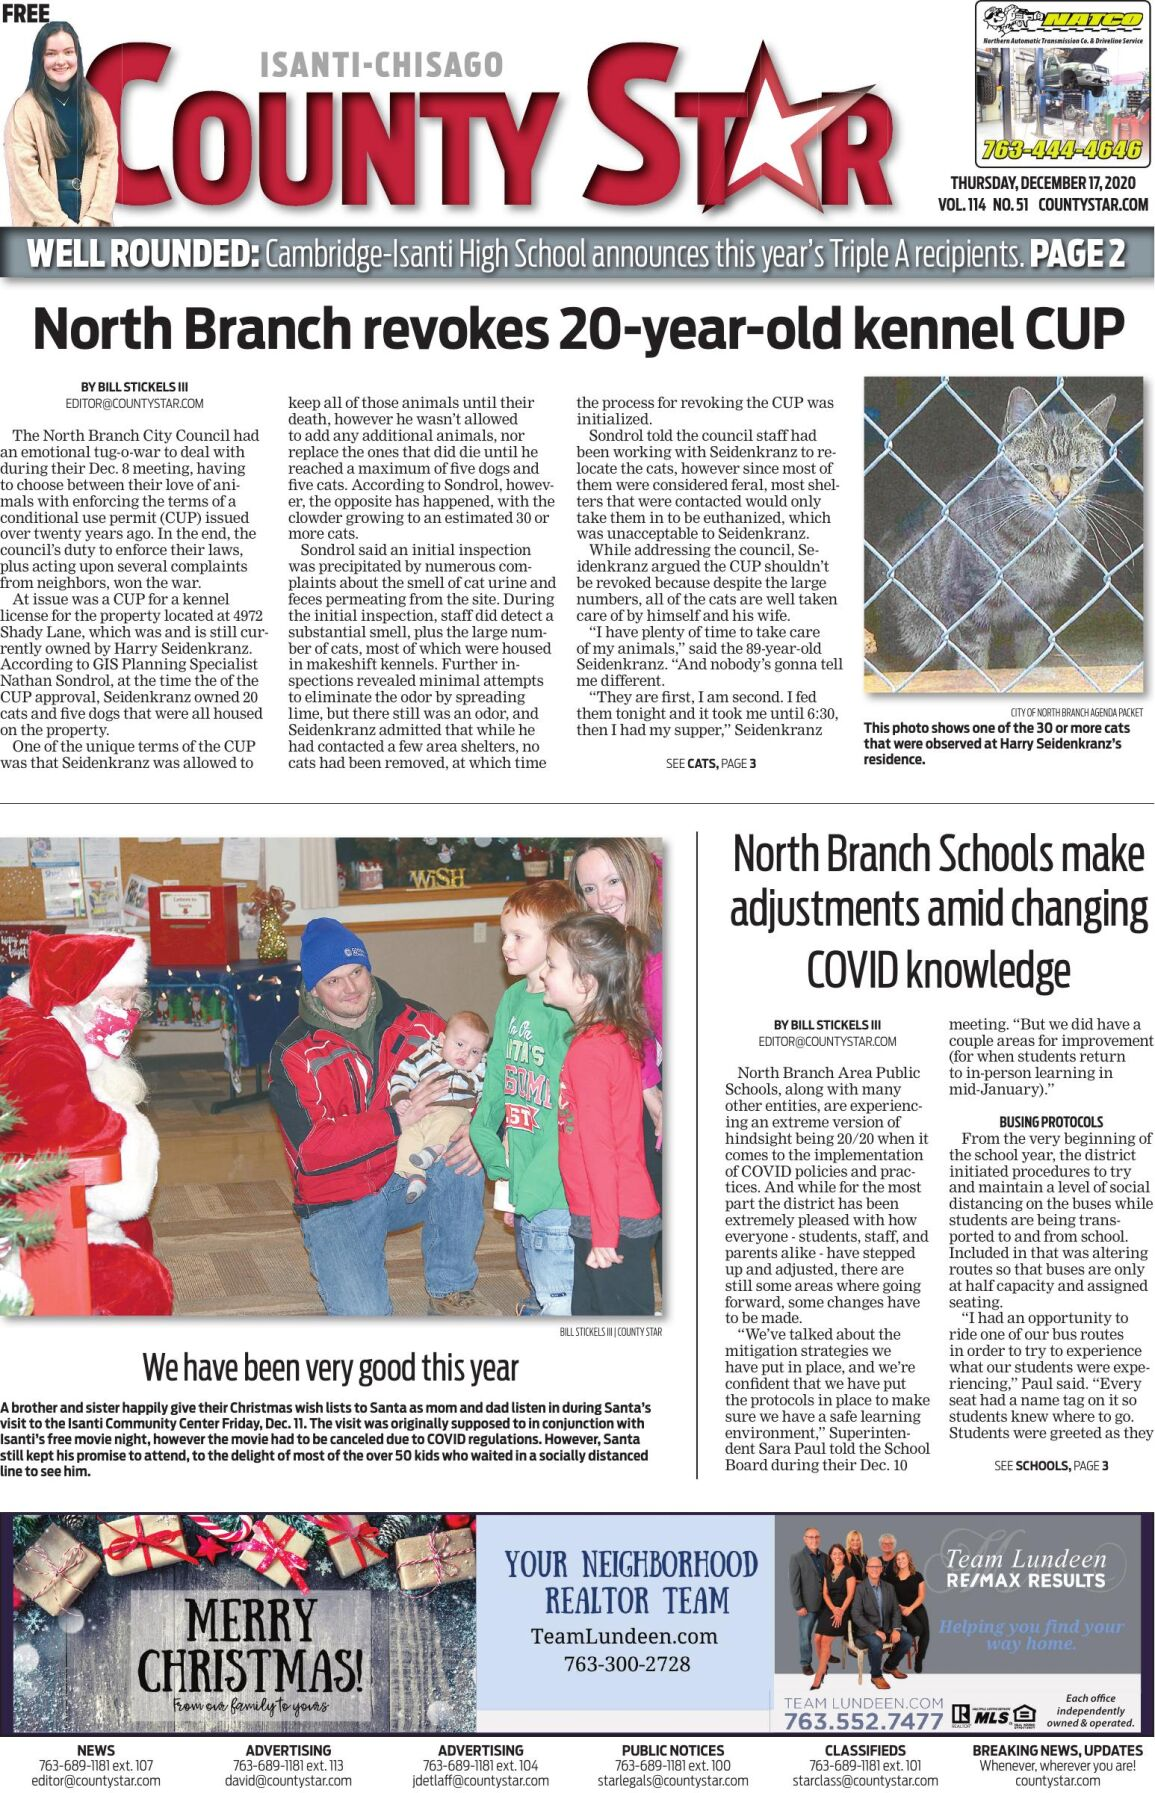 Isanti-Chisago County Star December 17, 2020 e-edition